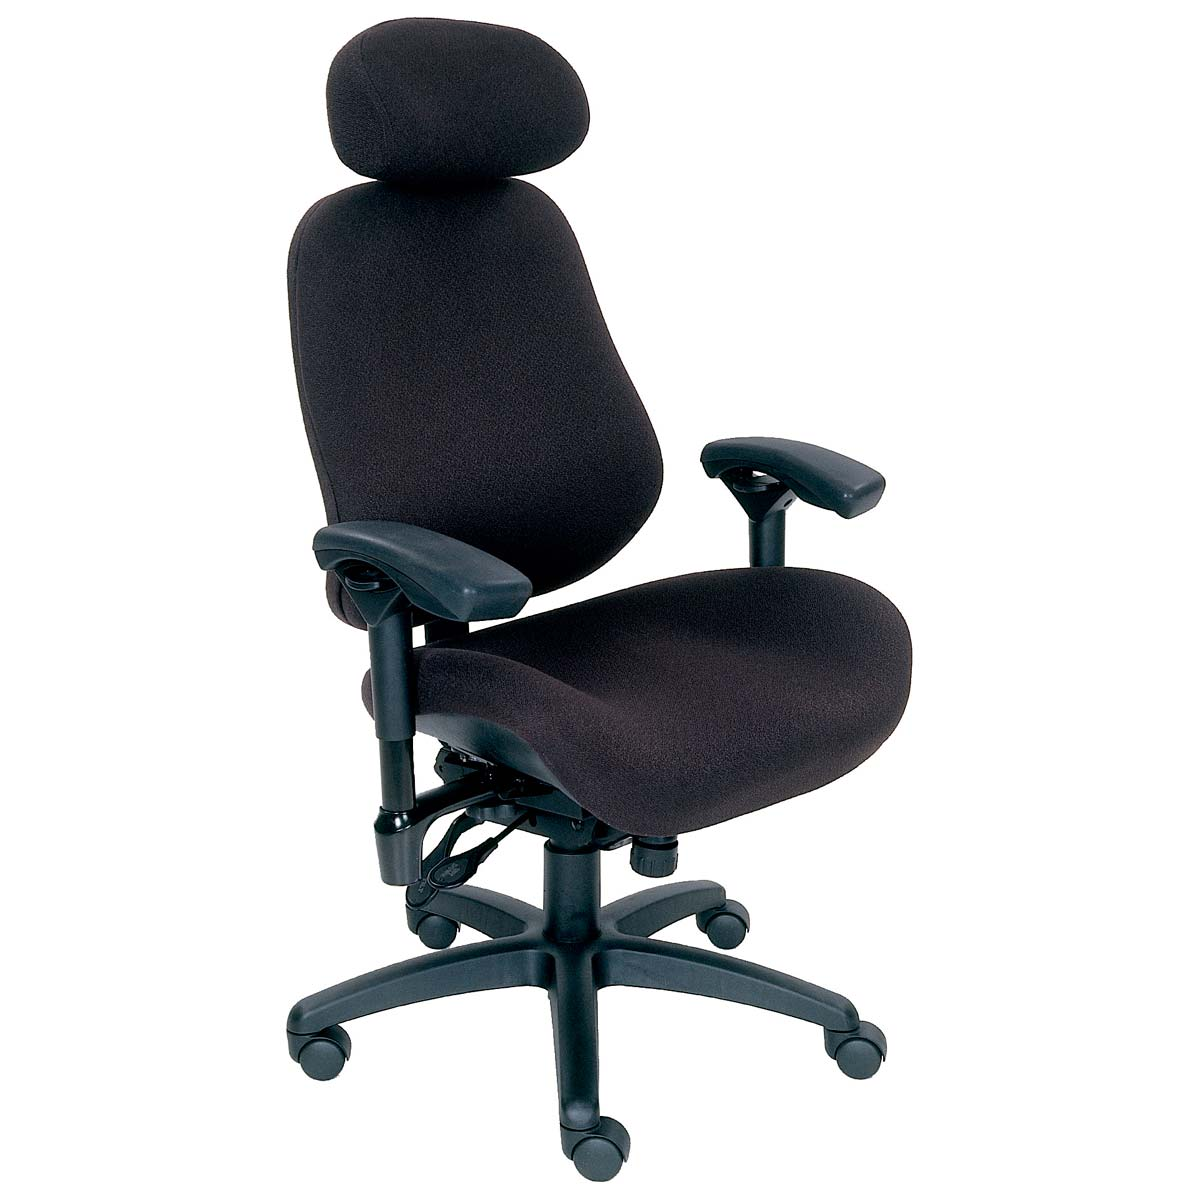 Tall Chair Shop Bodybilt 3504 High Back Executive Big And Tall Chairs